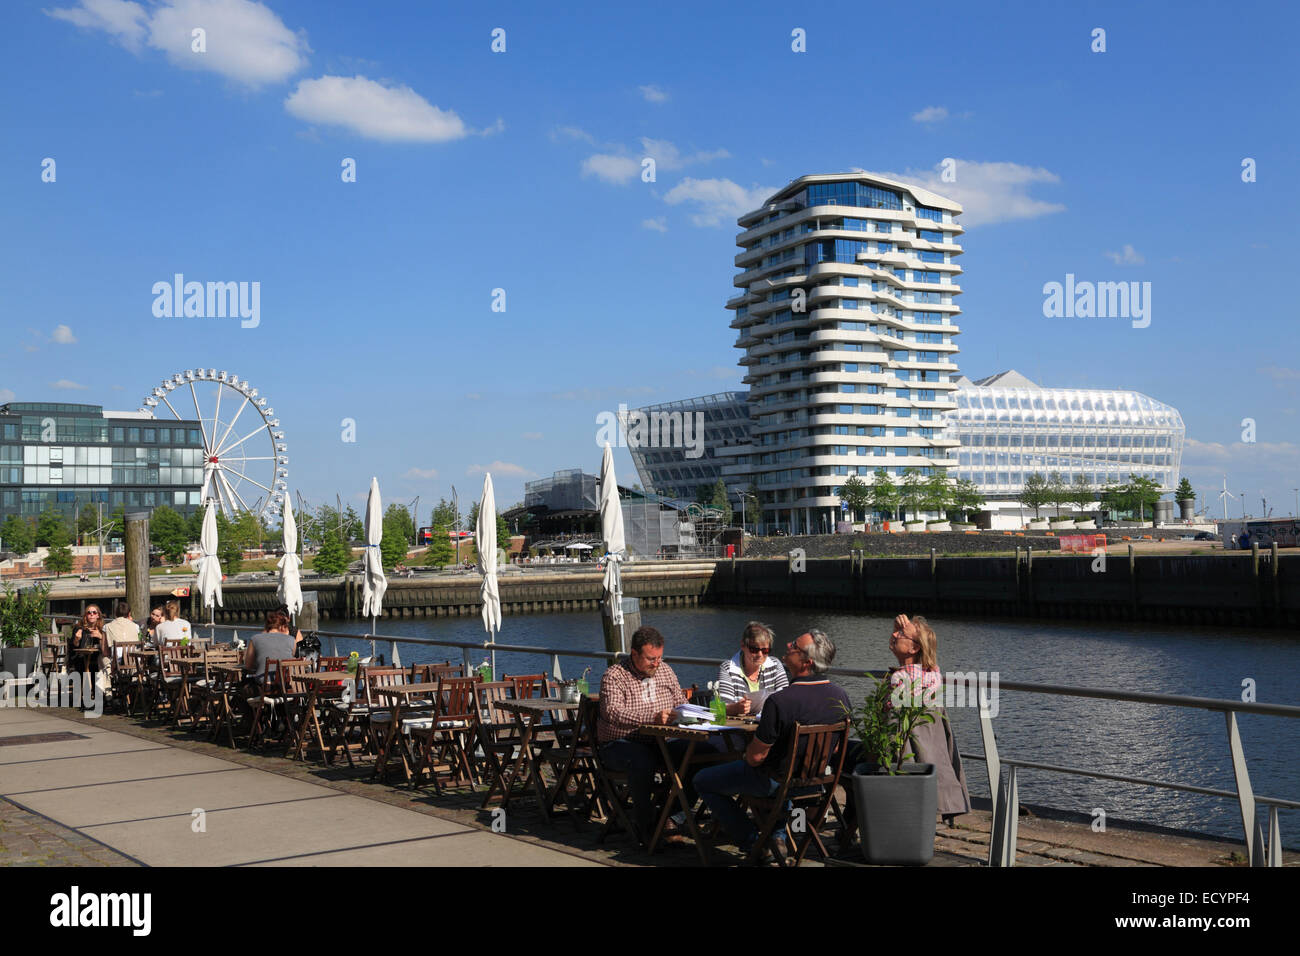 Cafe at Dalmannkai, view to Marco  Polo Tower and Unilever building, Hafencity, Hamburg, Germany, Europe - Stock Image